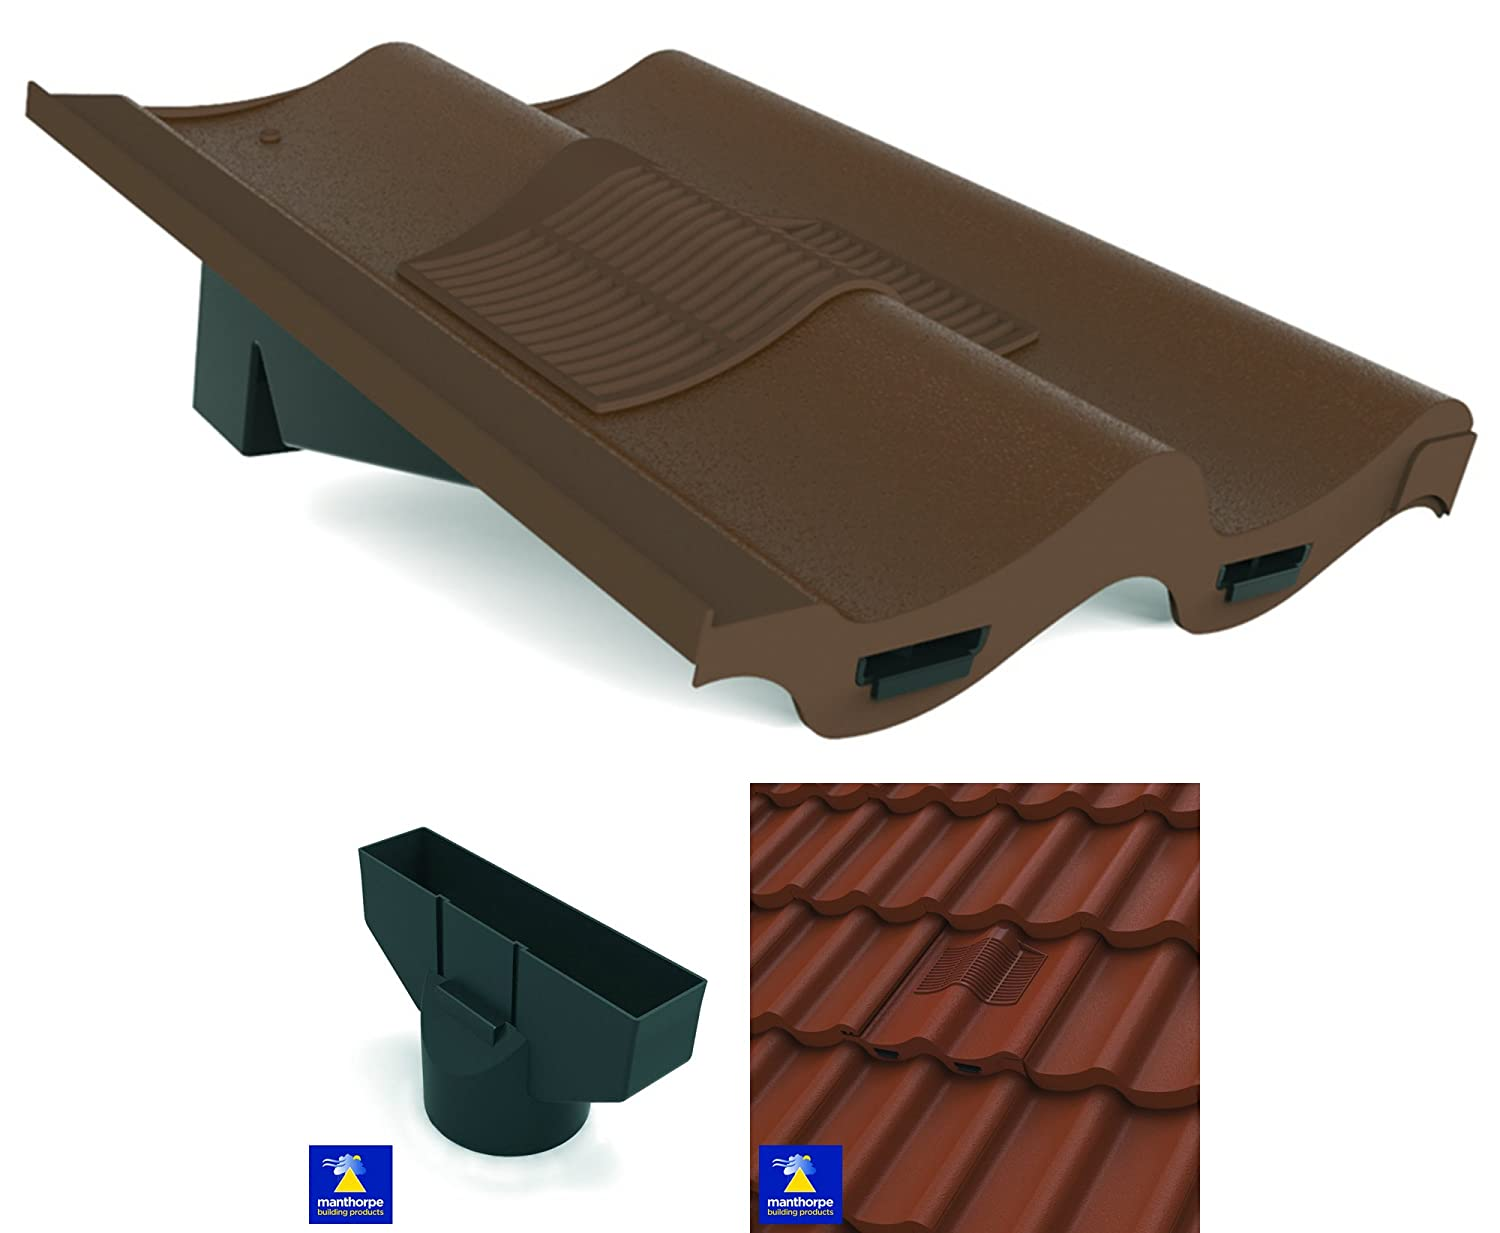 Brown Marley Mendip, Redland Grovebury Double Pantile Roof In-Line Tile Vent Ventilator & Flexi Pipe Adaptor Manthorpe